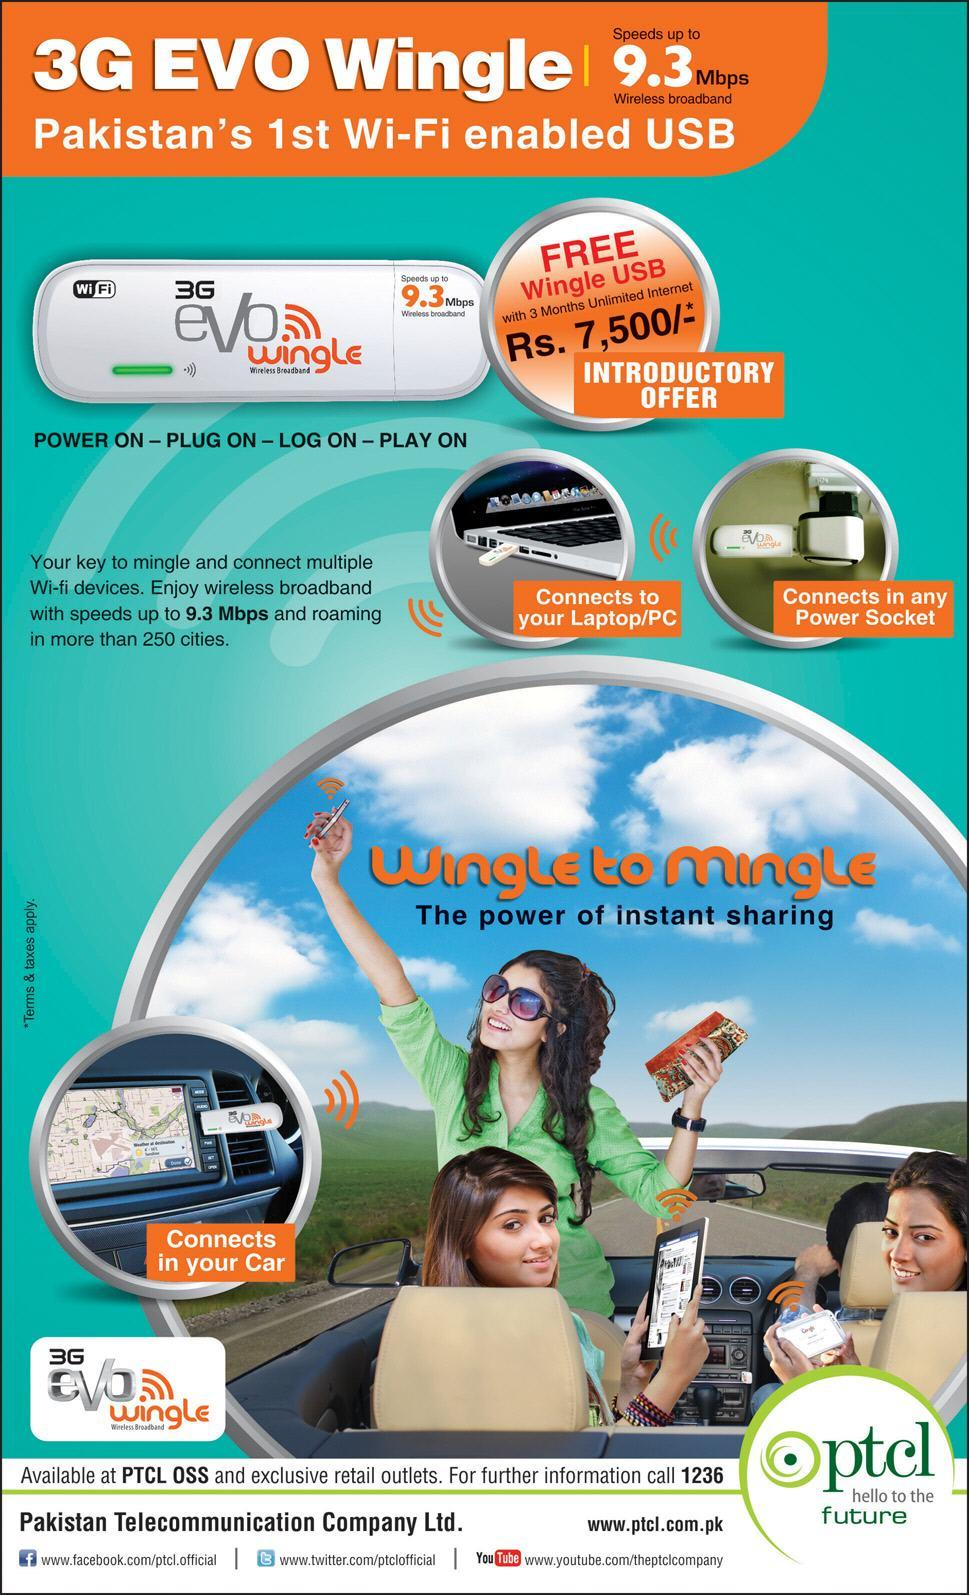 PTCL Brings 3G Evo Wingle 9.3 Mbps Wifi Enabled USB PTCL Brings 3G Evo Wingle 9.3 Mbps Wifi Enabled USB